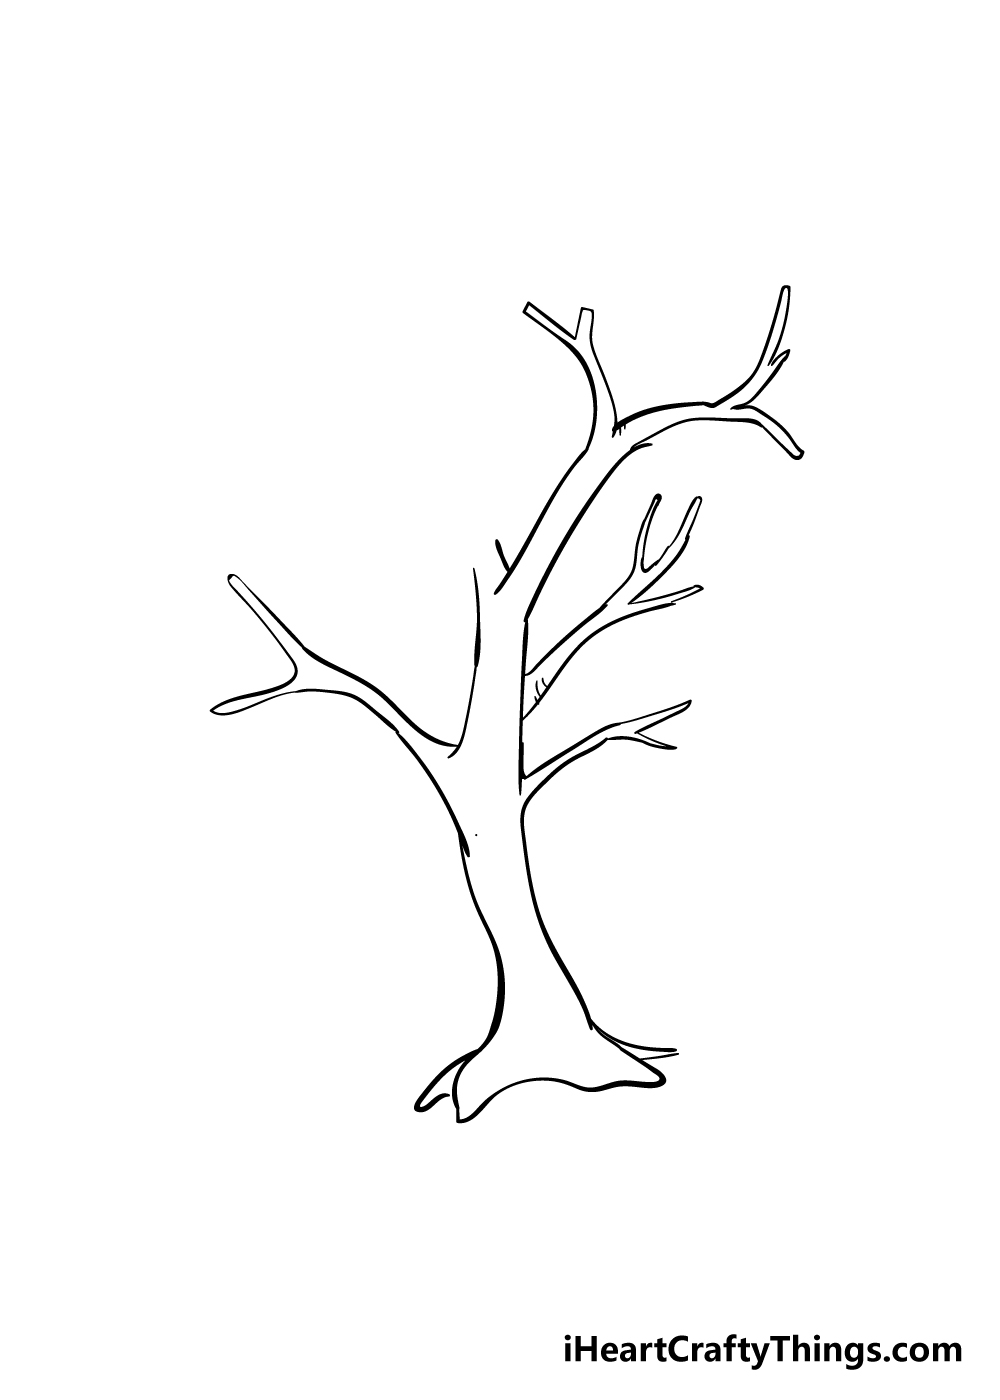 drawing branches step 3